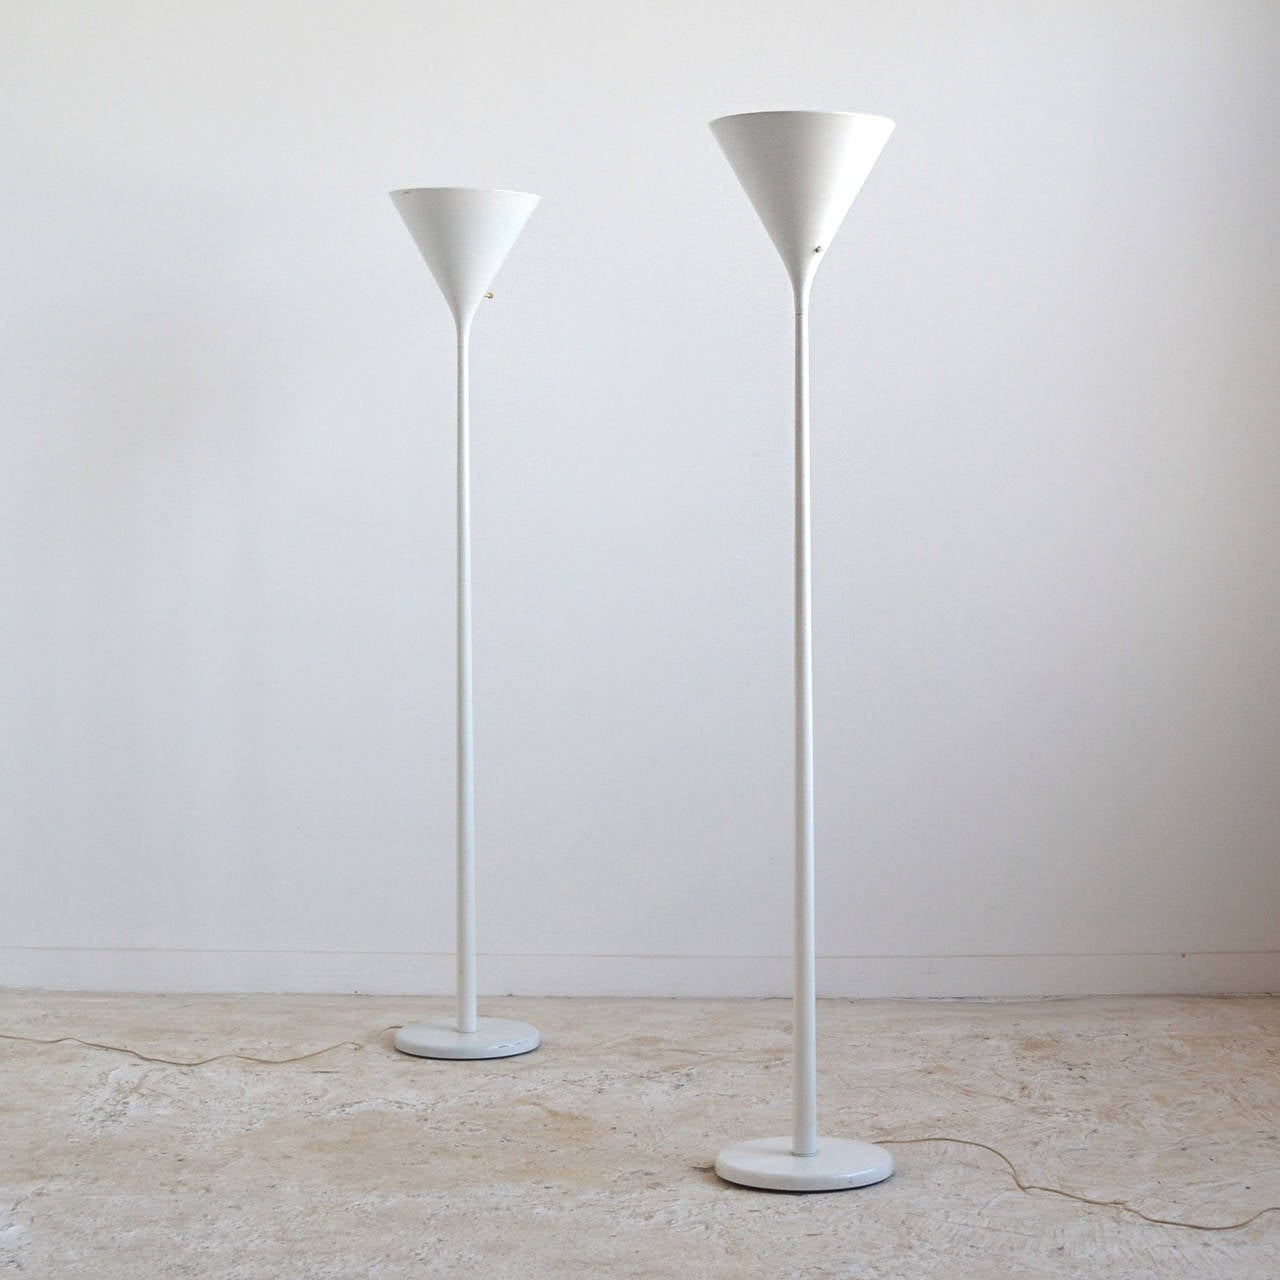 Nessen pair of torchiere floor lamps at 1stdibs for Contemporary torchiere floor lamps